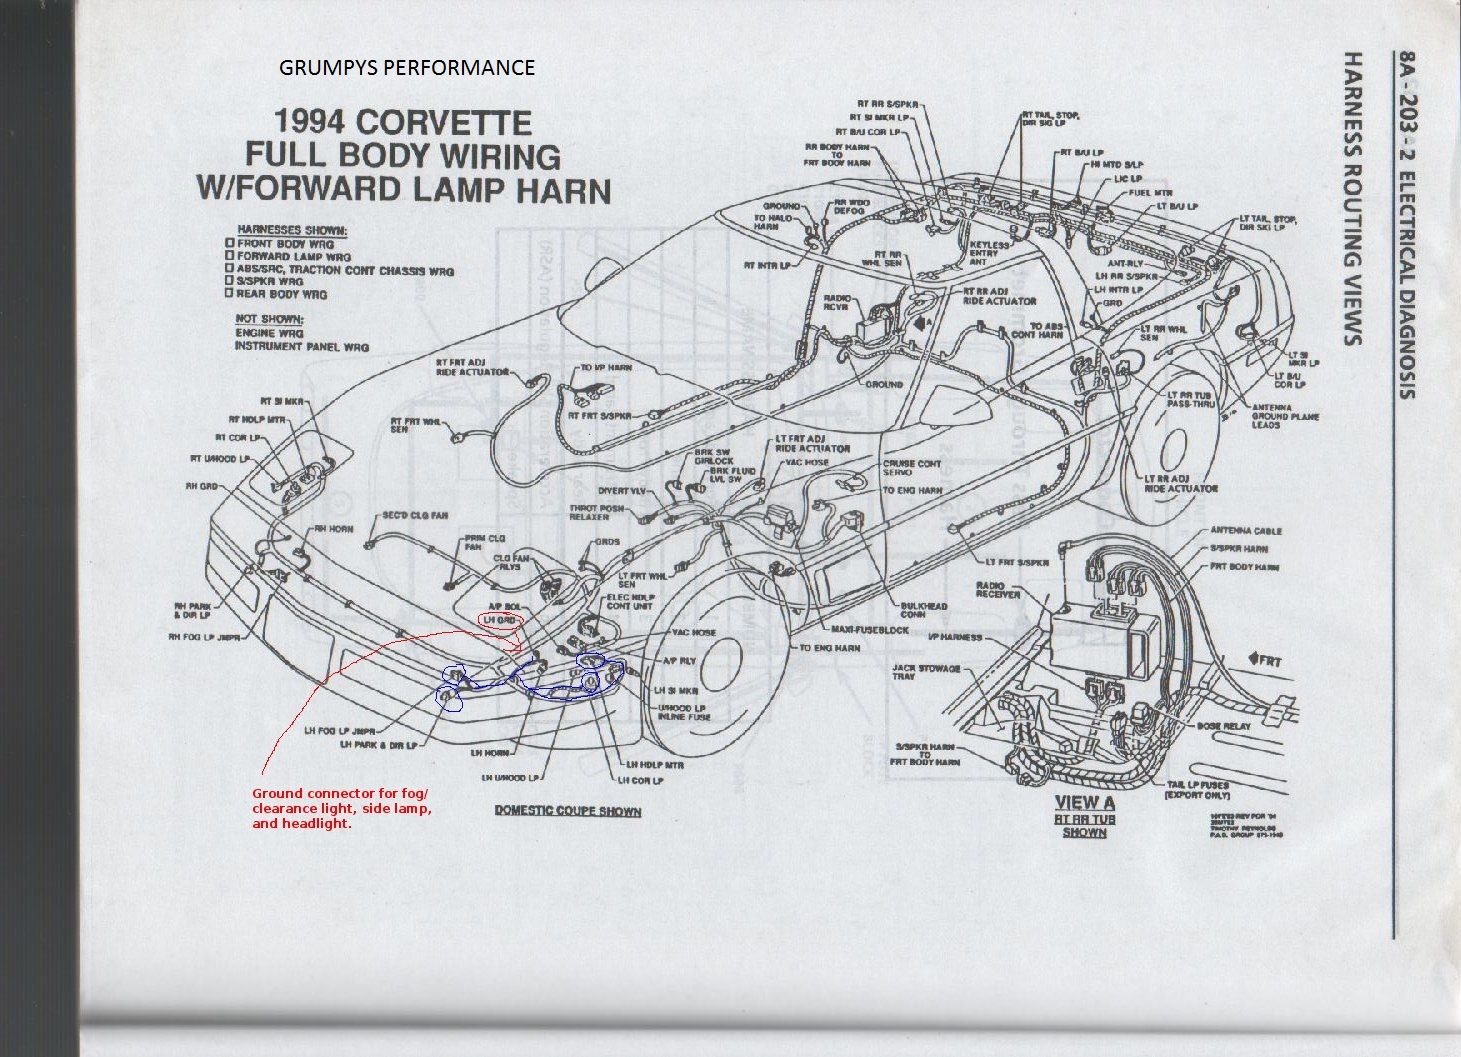 98 Silverado Body Wiring Diagram Library 1990 Chevy 350 Mounting An Effective Trans Cooler On A C4 Corvette 1997 Lumina 1998